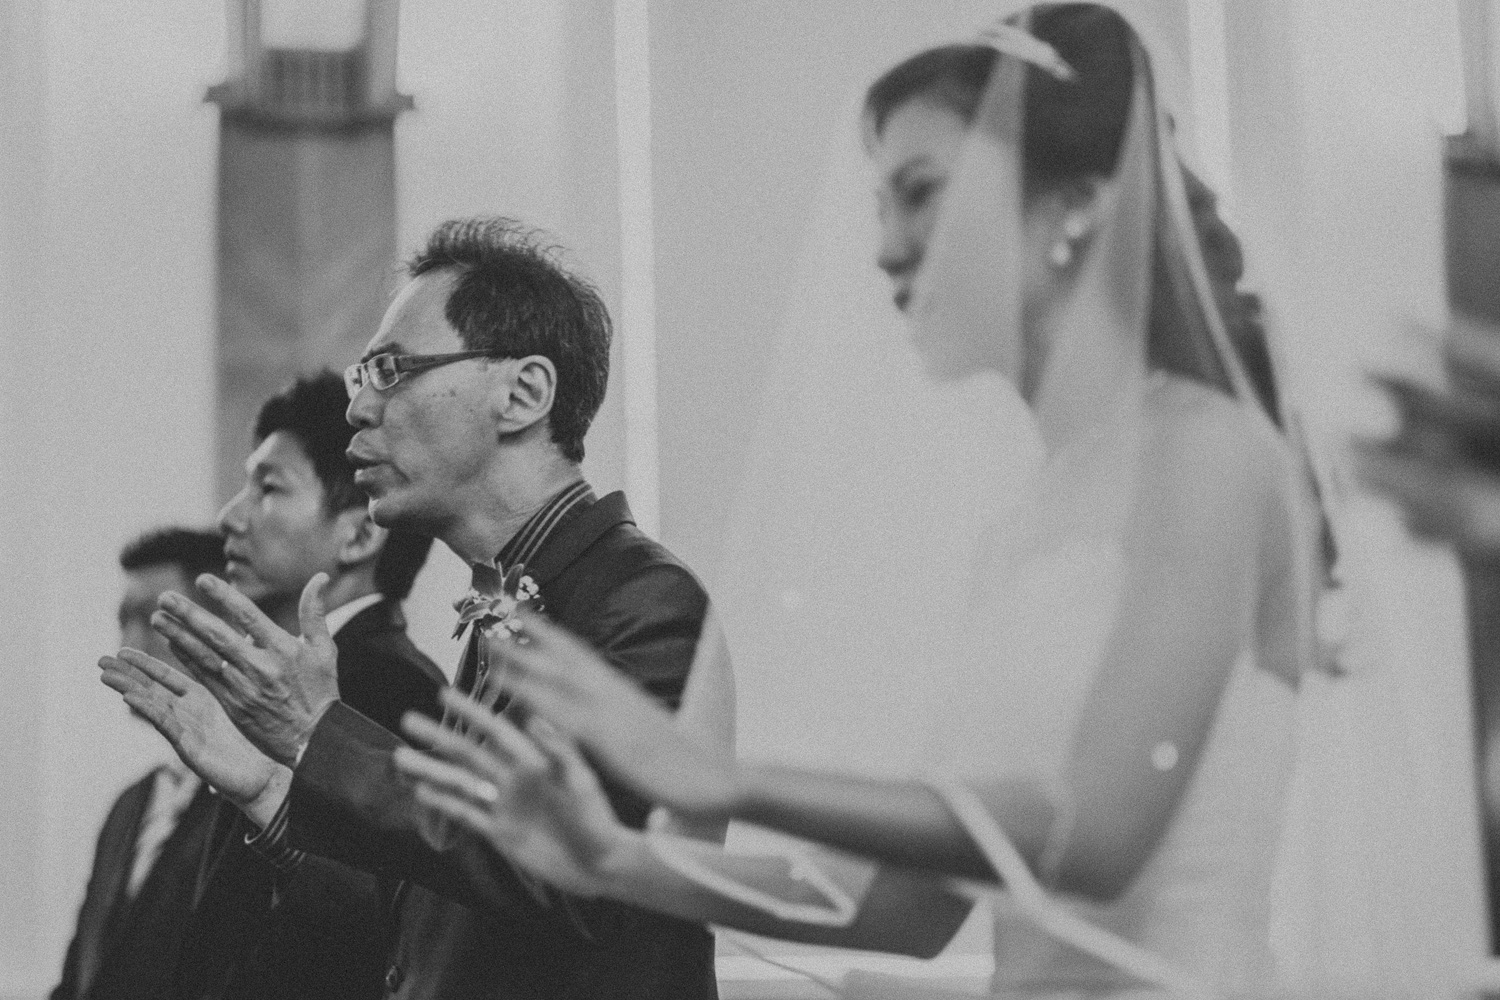 bittersweet photography Singapore wedding photographer jonathan 57